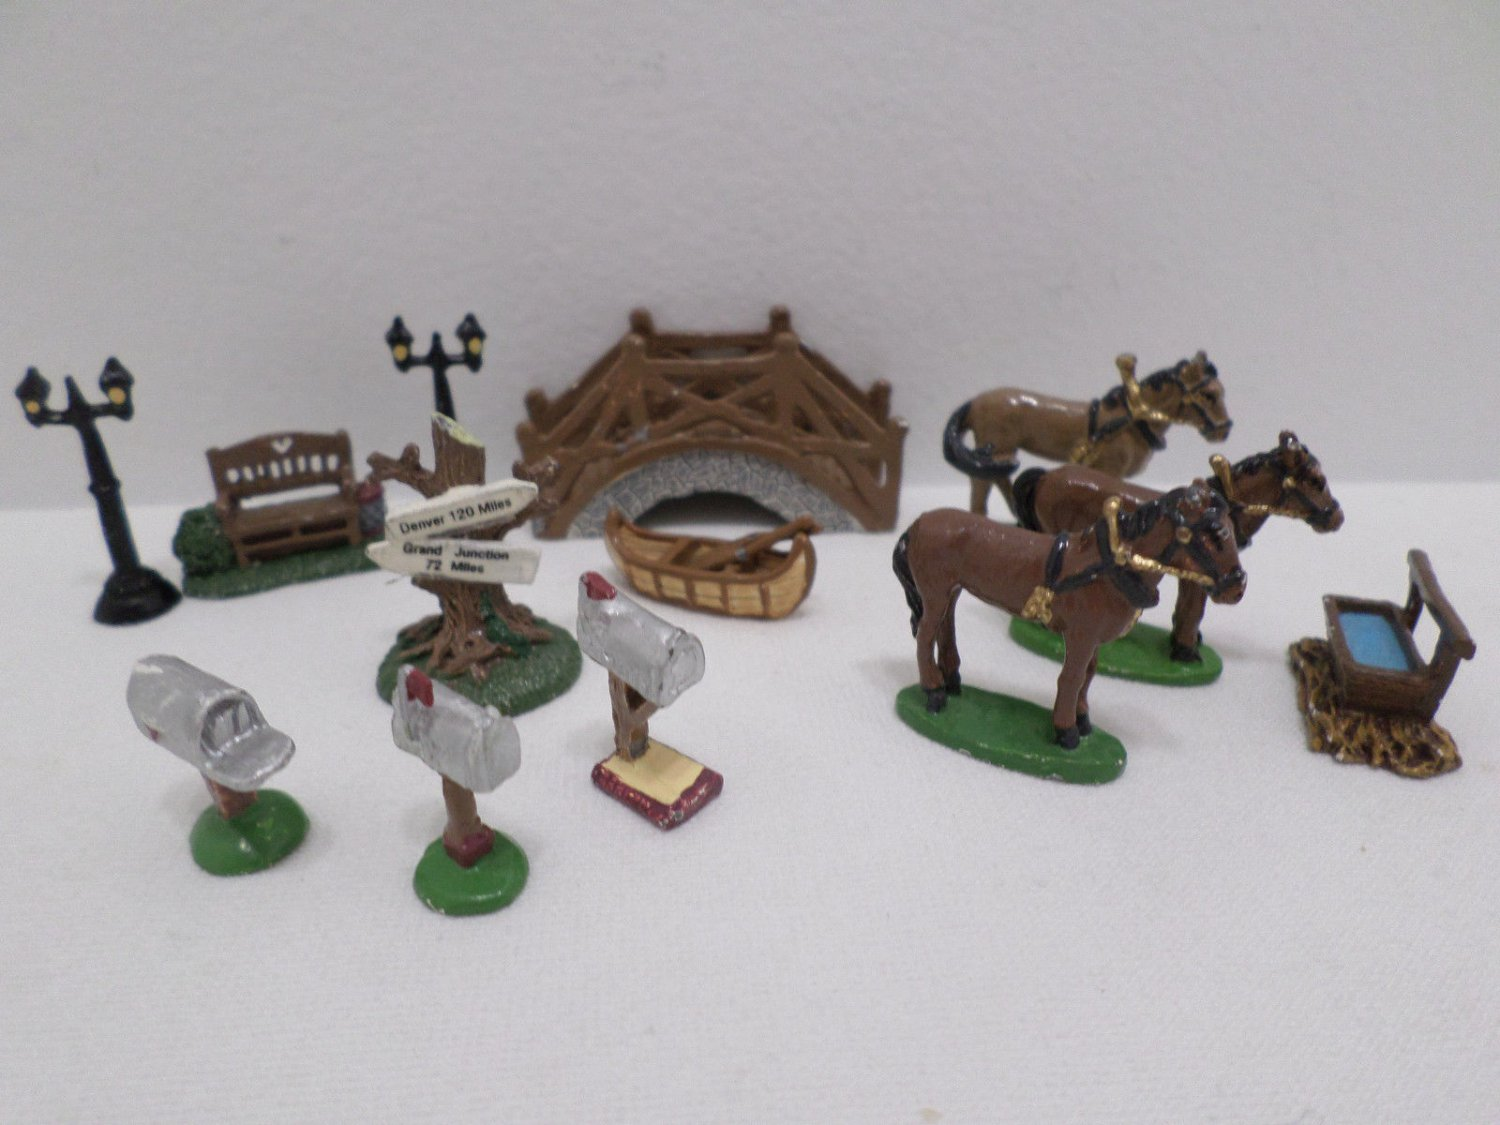 Christmas Village Figurines Accessories Horses Miniature Pewter 96-99 IRS China